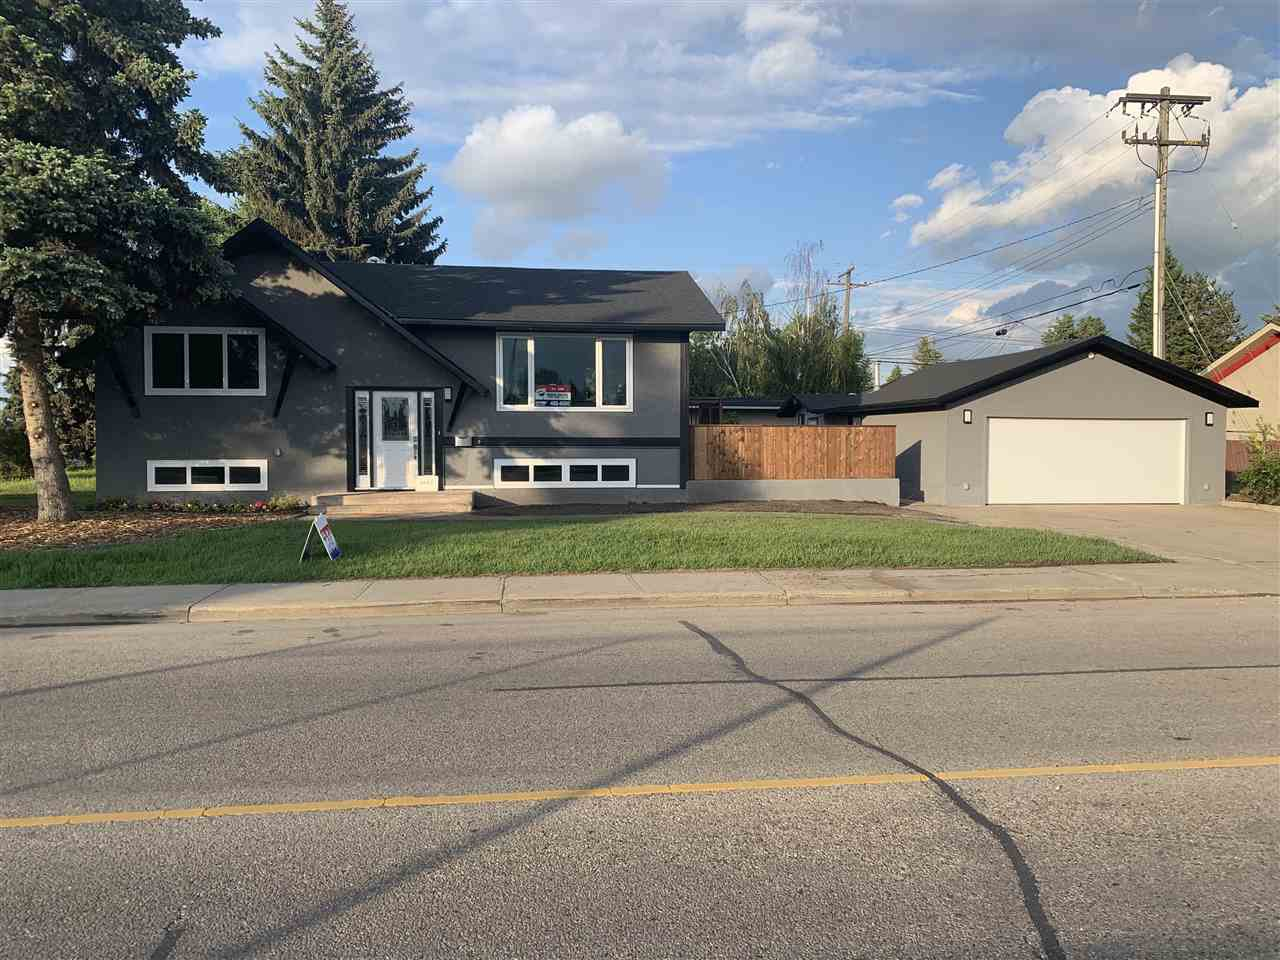 Main Photo: 9447 OTTEWELL Road in Edmonton: Zone 18 House for sale : MLS®# E4160873